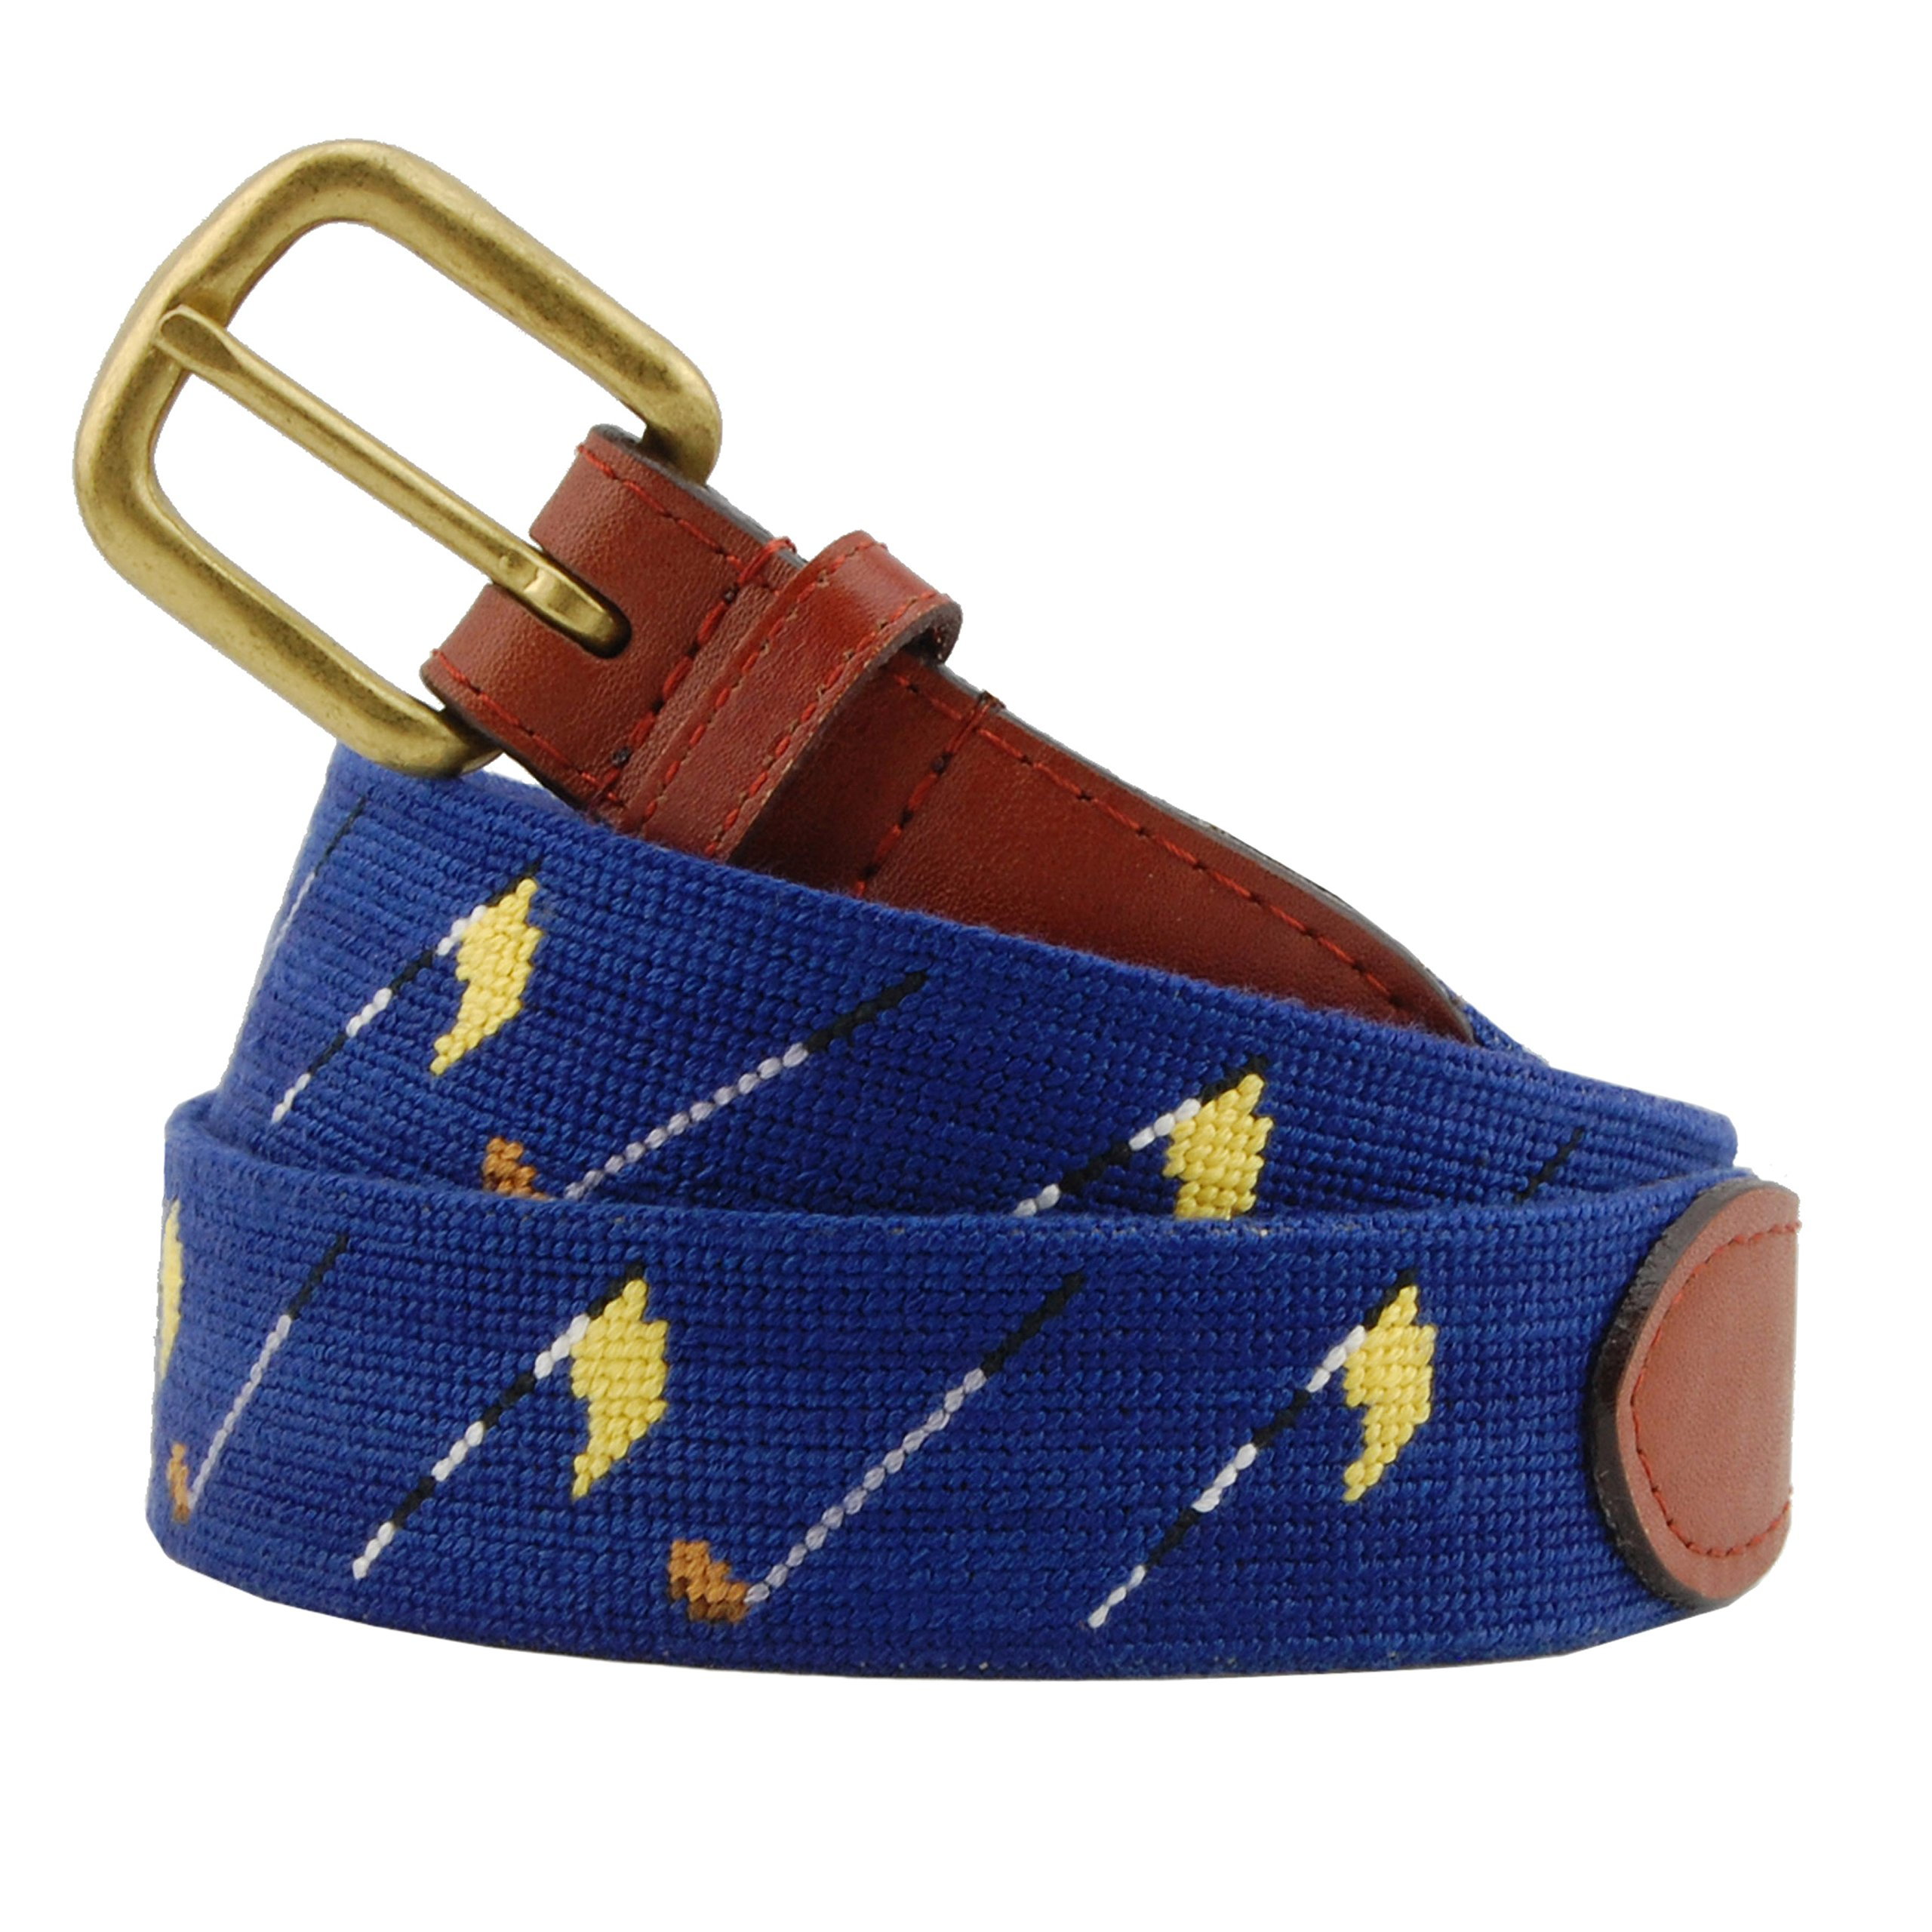 Smathers & Branson Men's Golf Flags Needlepoint Belt (Navy) 42 Classic Navy by Smathers & Branson